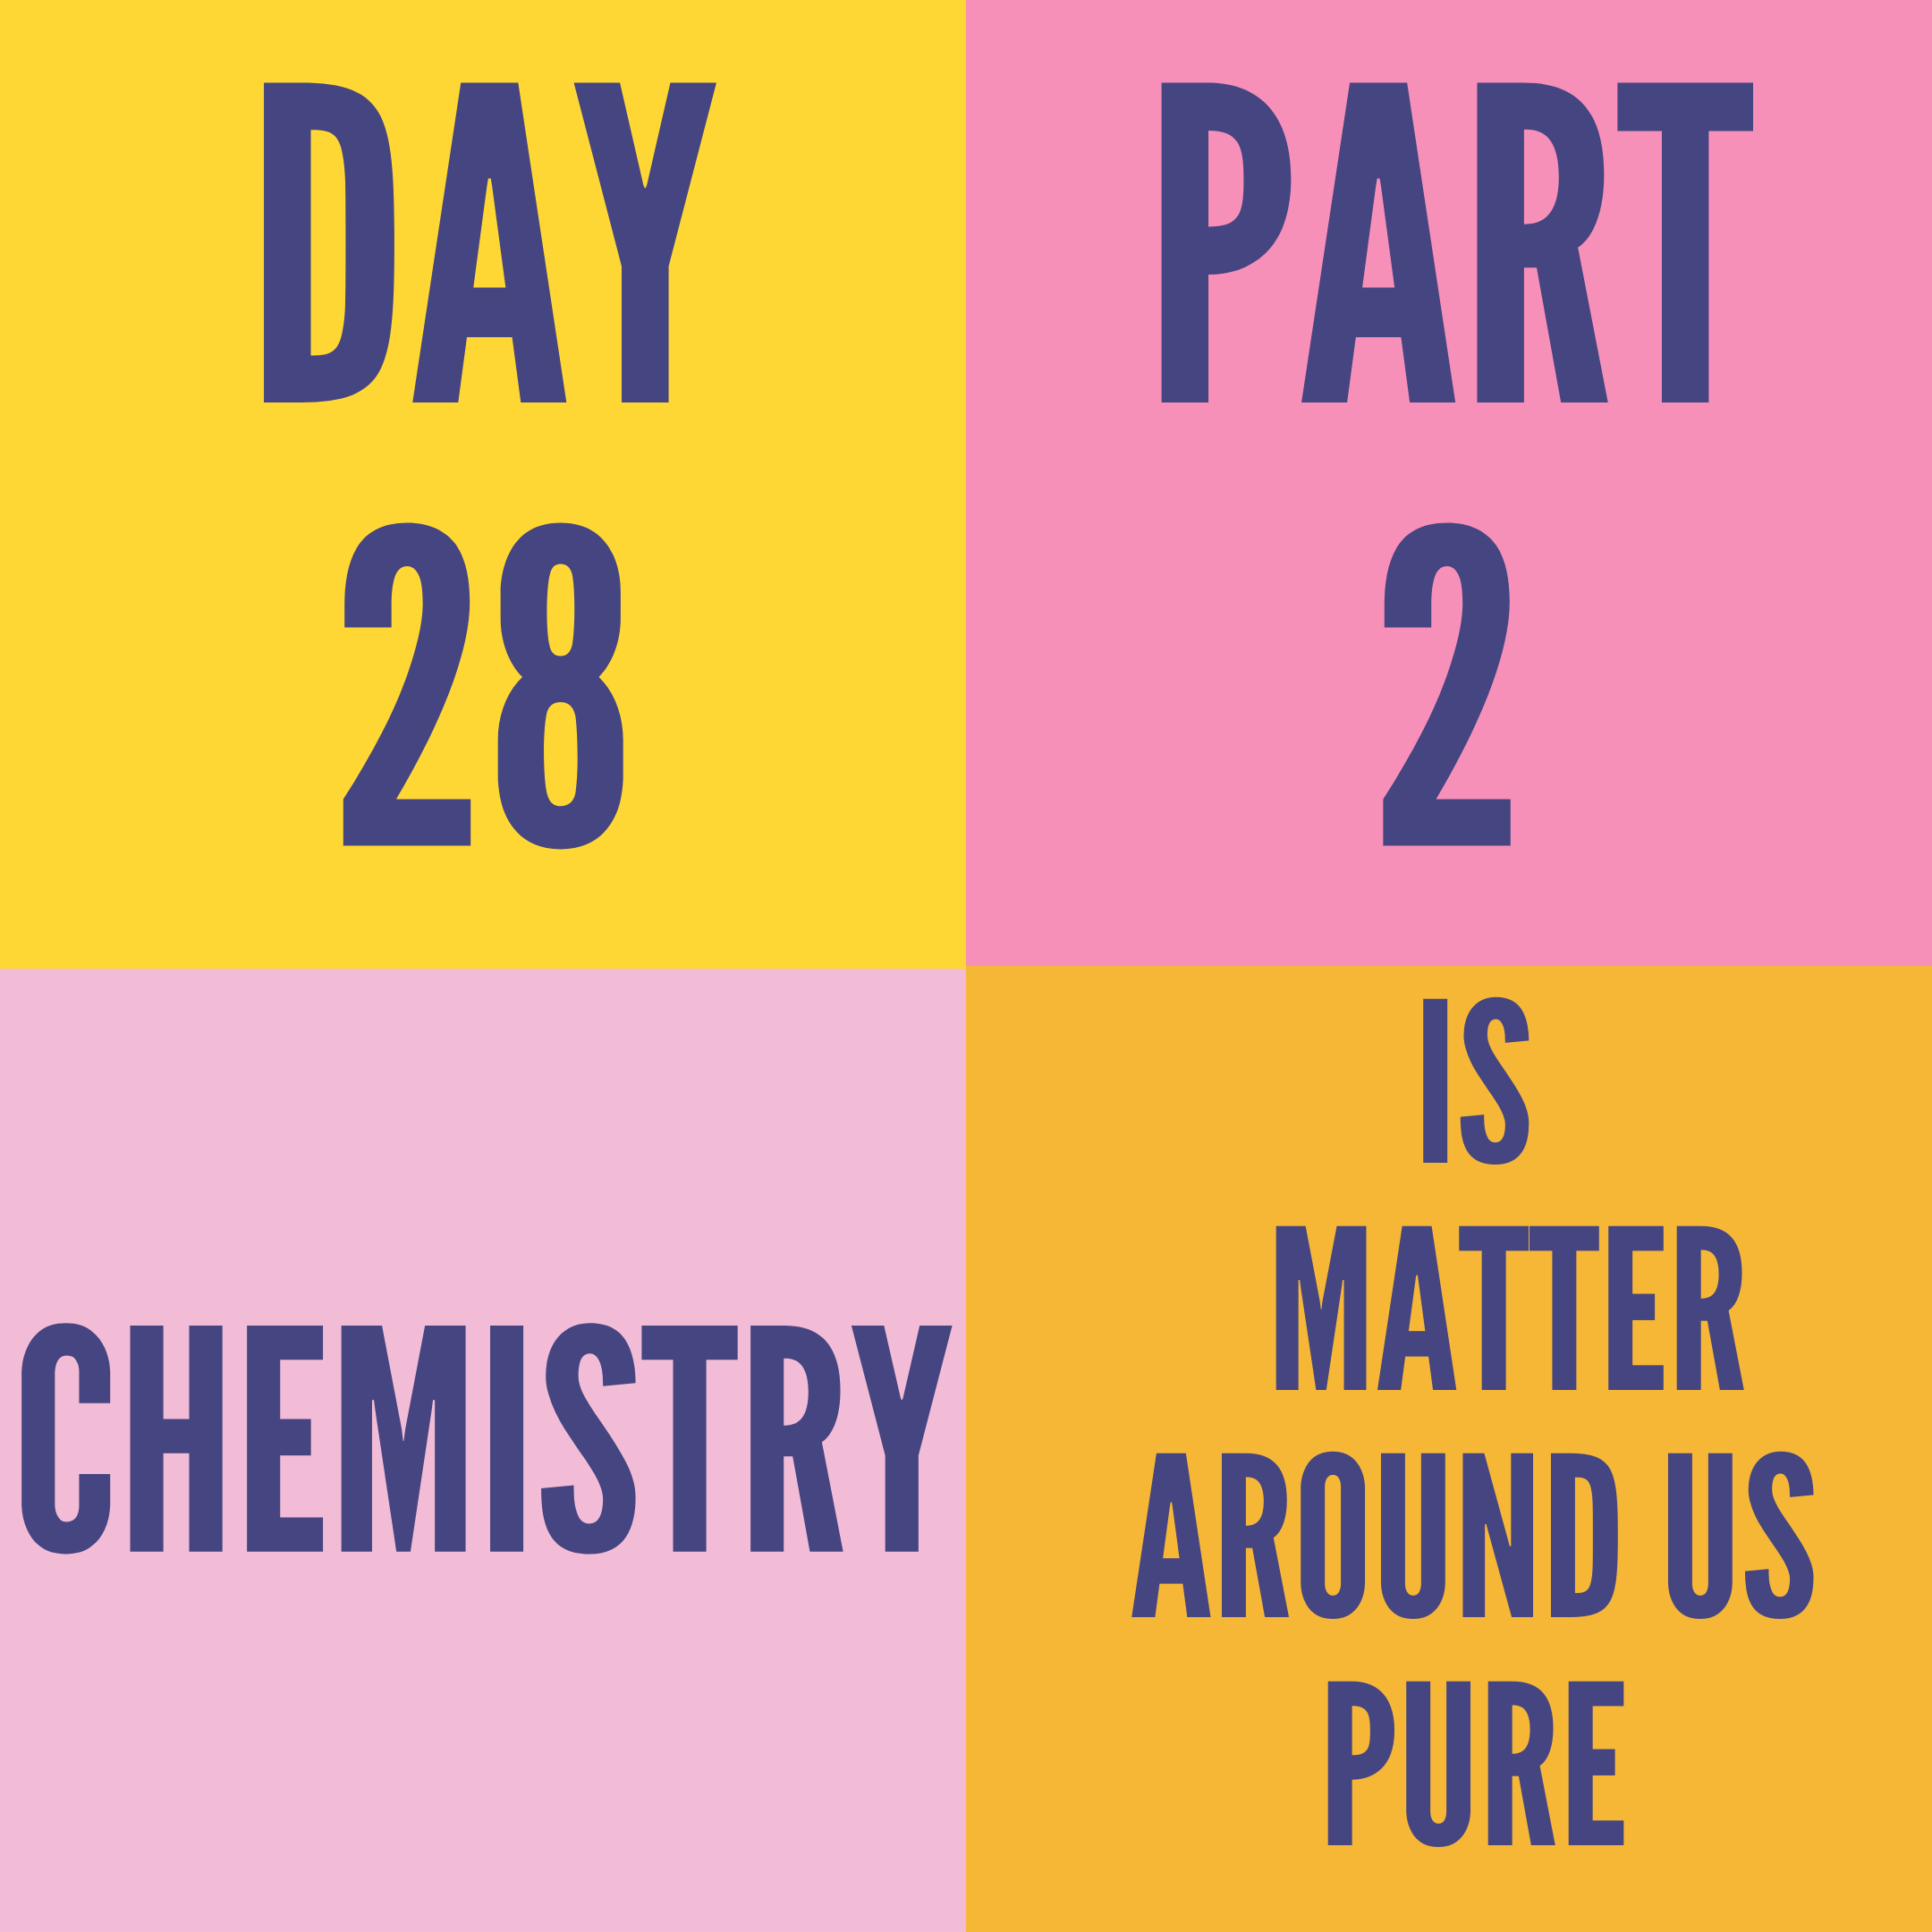 DAY-28 PART-2 IS MATTER AROUND US PURE